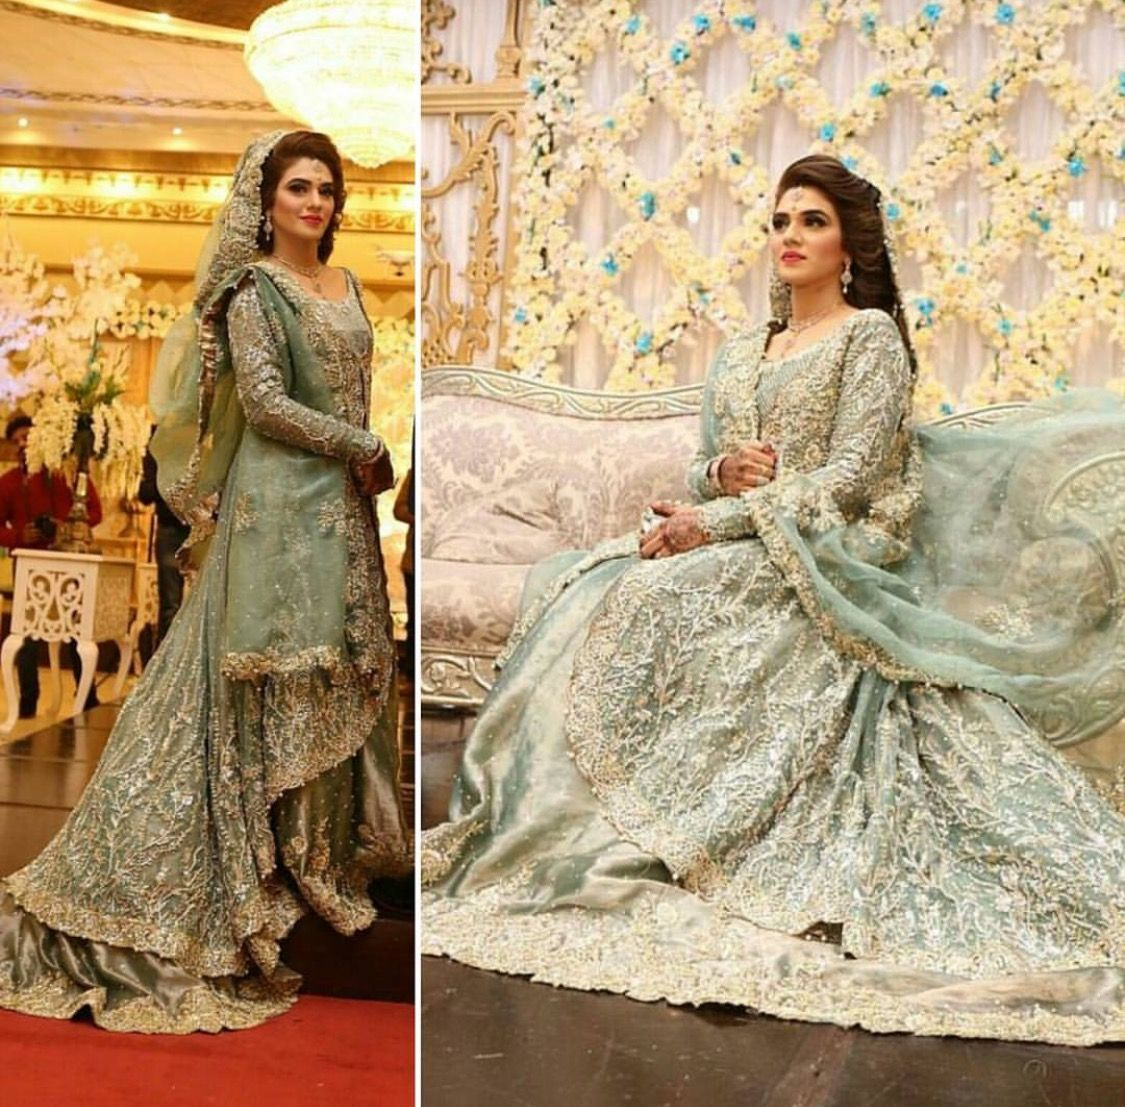 Pin by Fatima Memon on THE MODERN BRIDE | Pinterest | Asian wedding ...